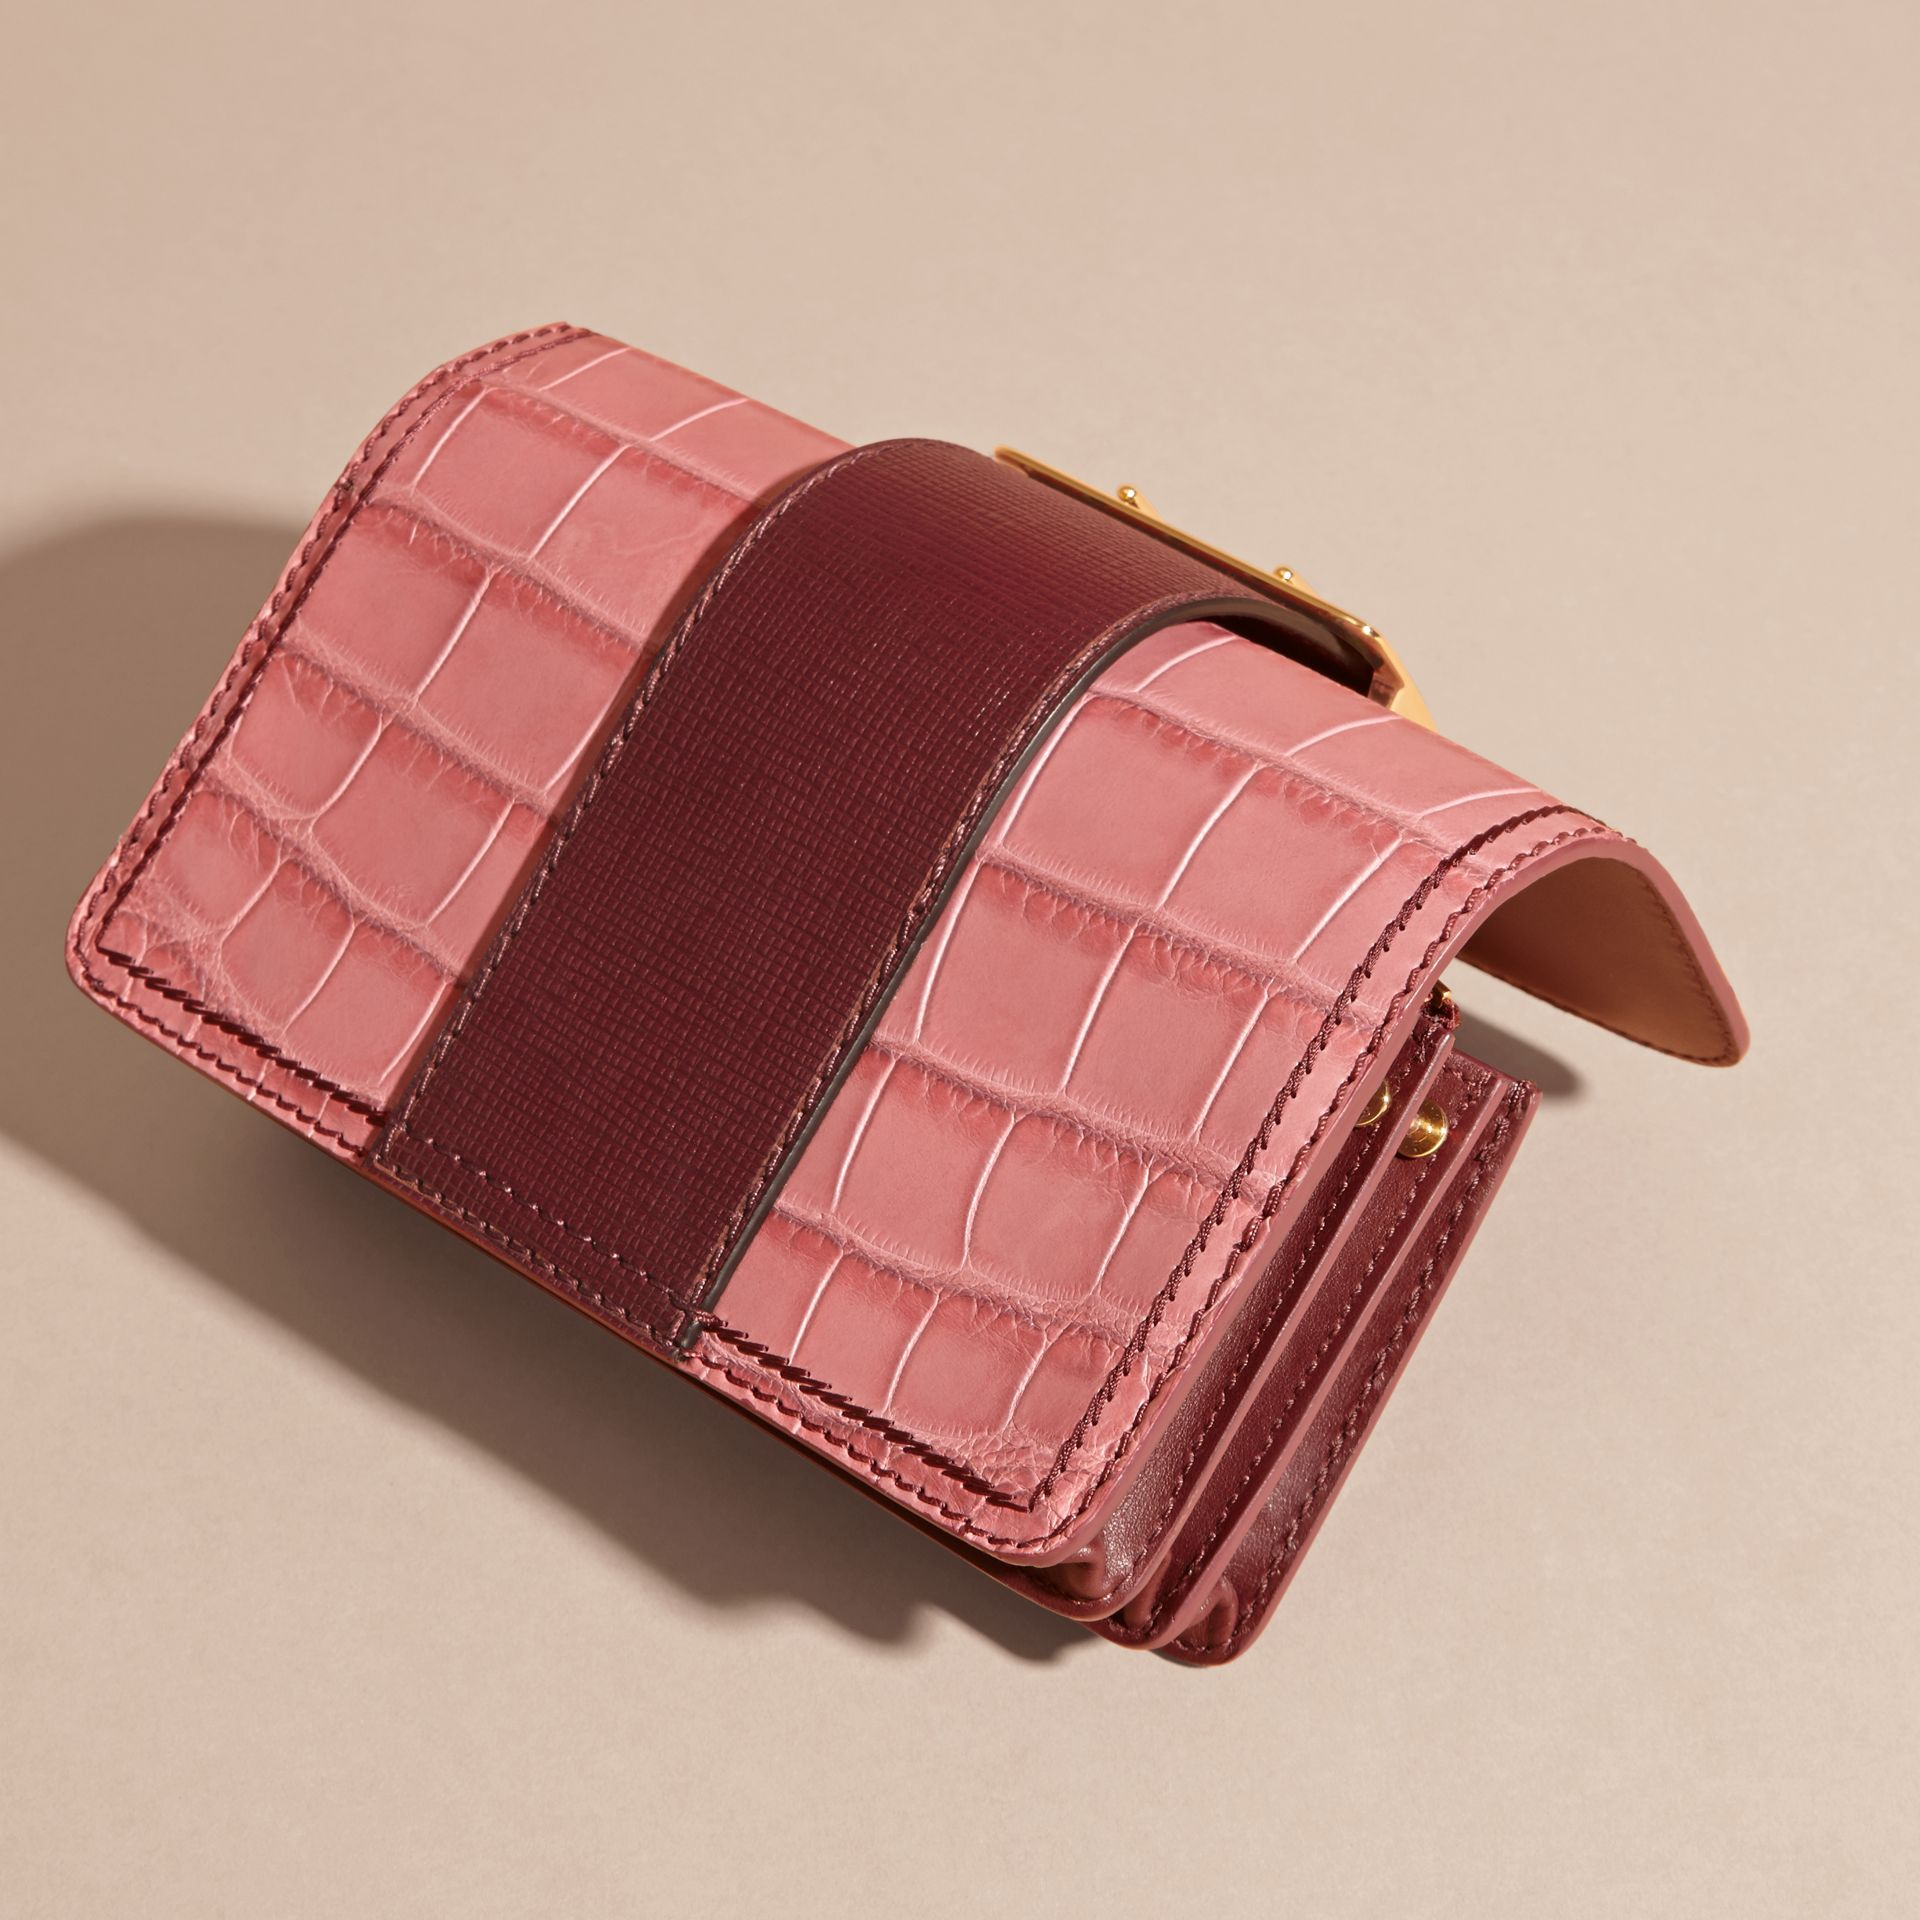 The Small Buckle Bag in Alligator and Leather in Dusky Pink/ Burgundy - Women | Burberry United Kingdom - gallery image 7